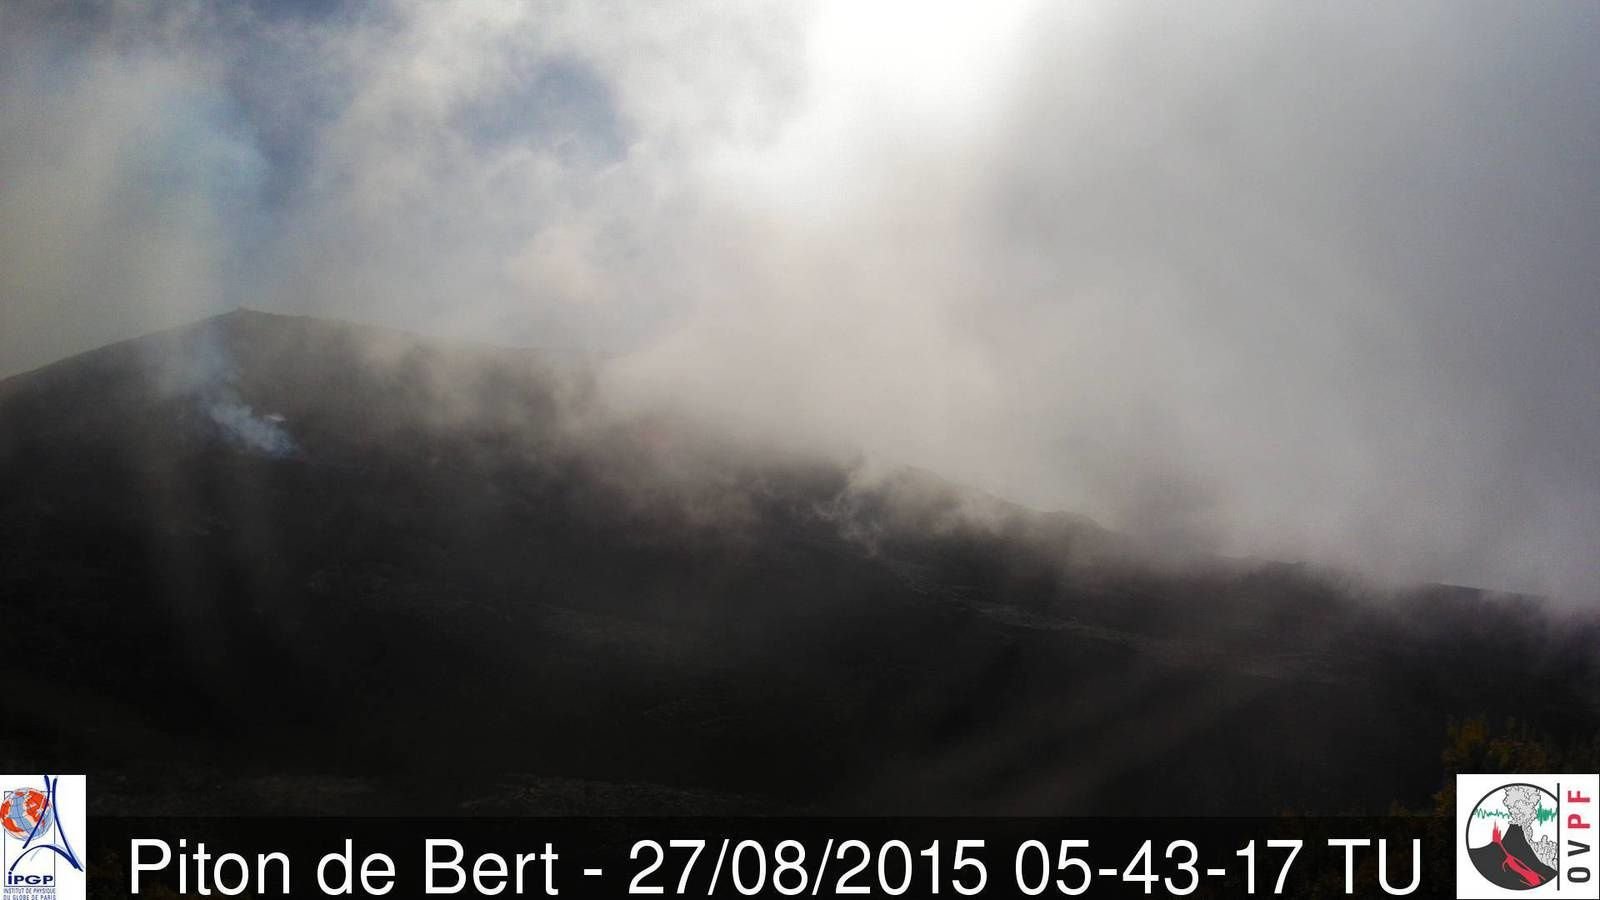 Piton de la Fournaise - activity remains present this morning - webcam Piton Bert / OVPF